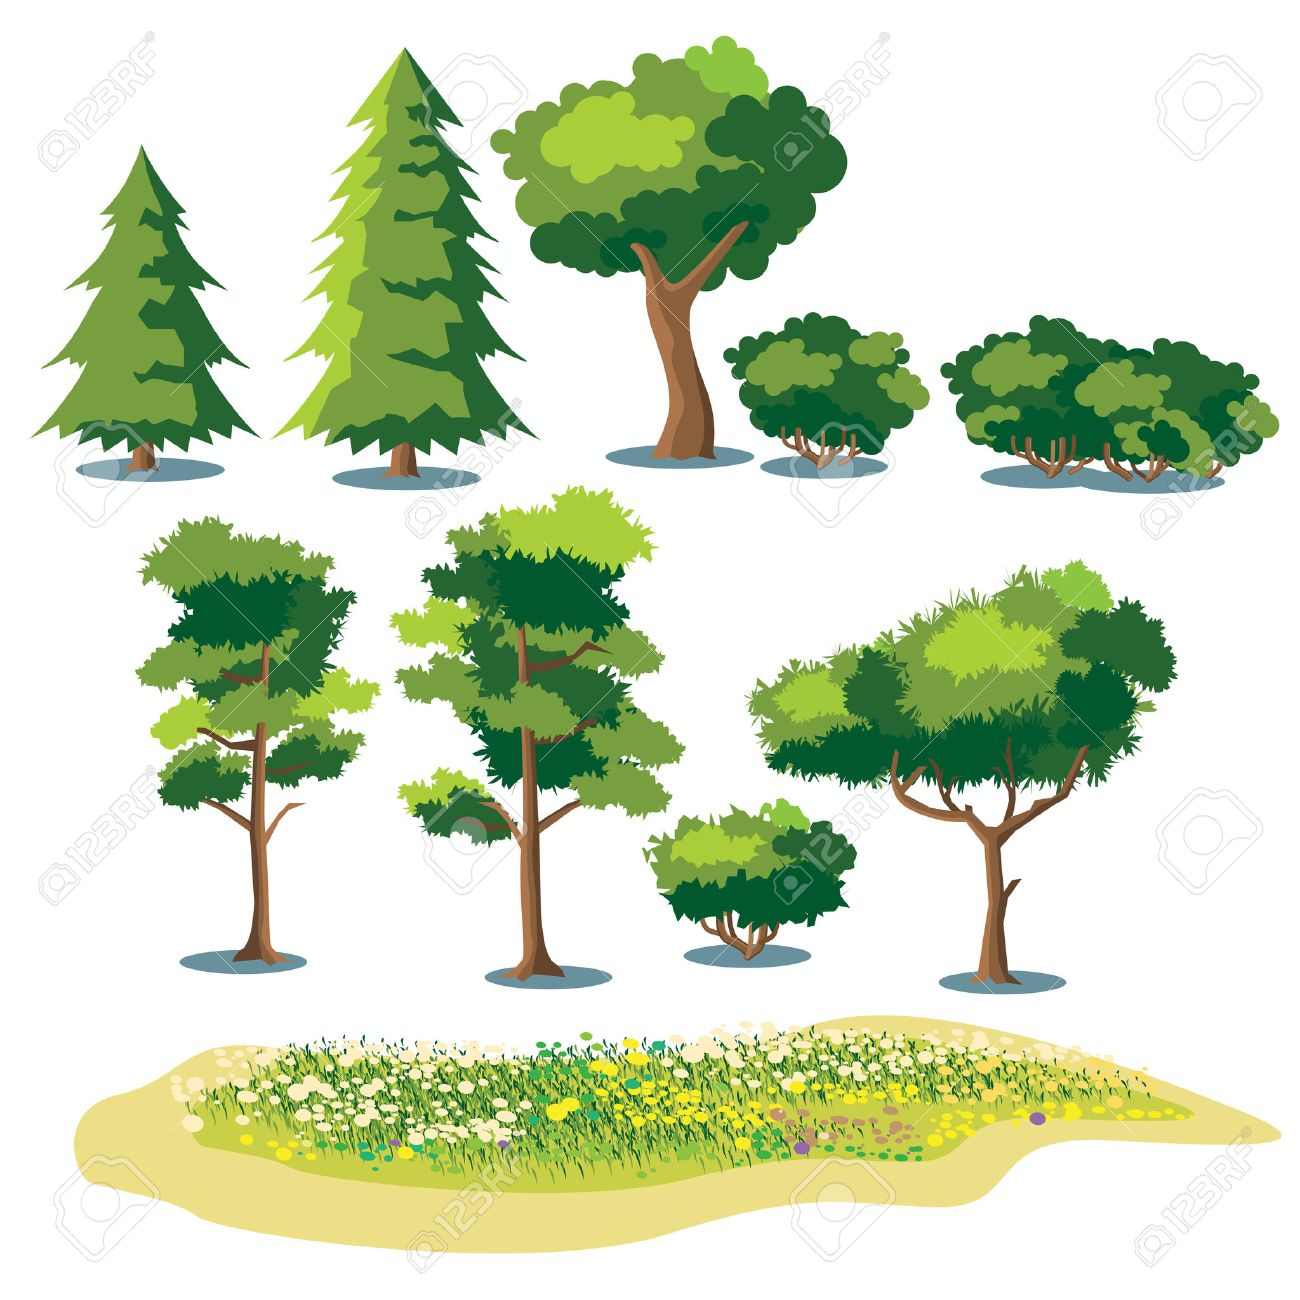 set of stylized vector plants. shrubs, trees and fields with grass and blooming flowers - 43678927